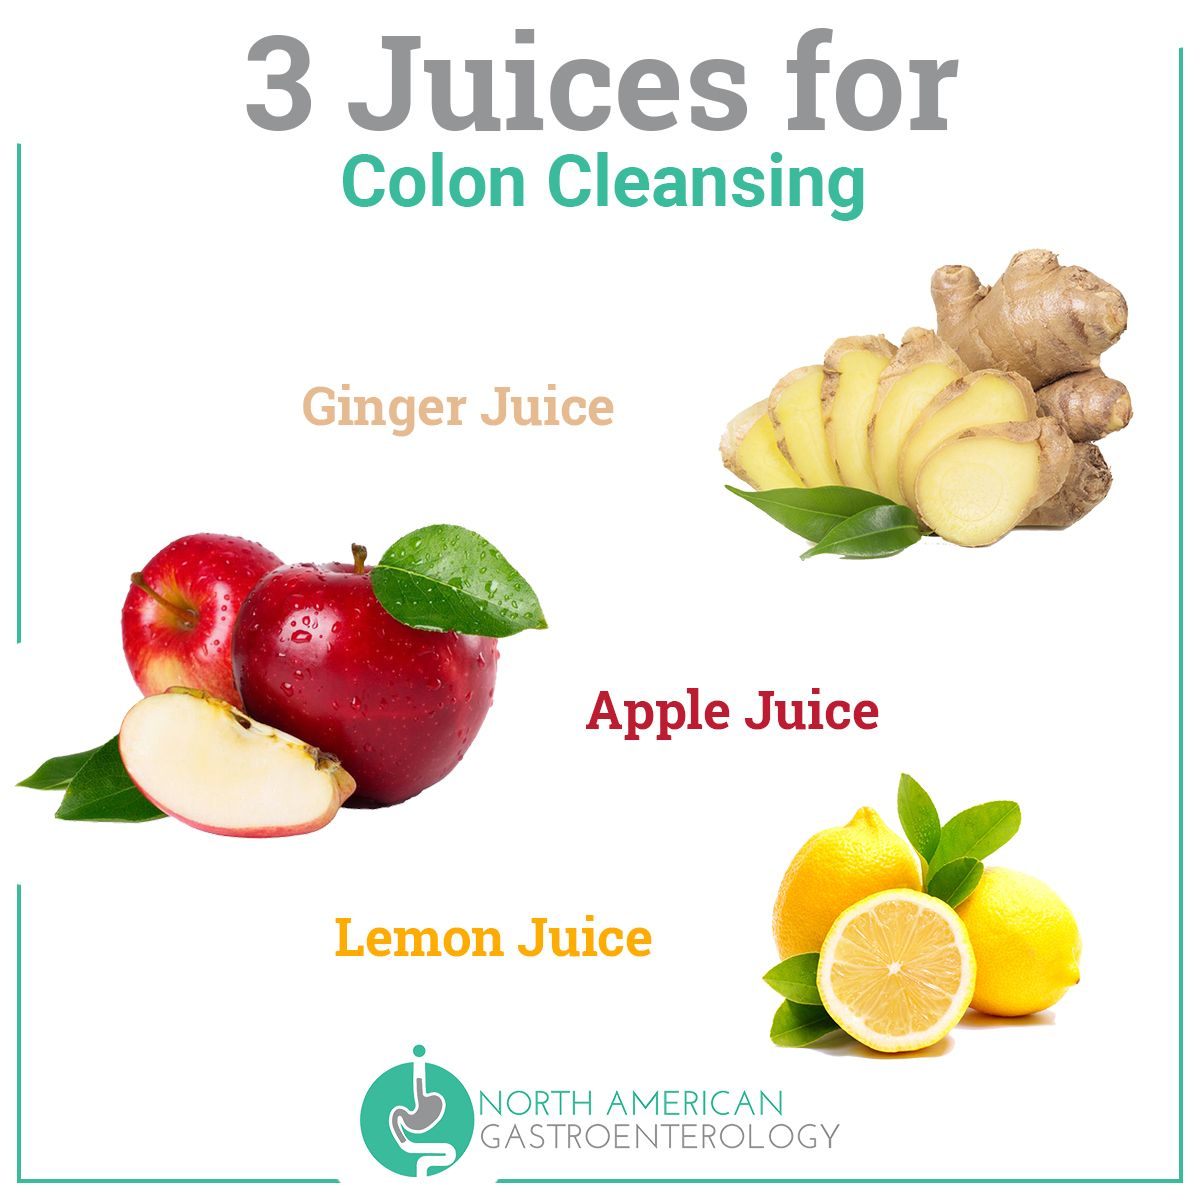 3 Juices For Colon Cleansing Health Healthcareforall Coloncancerawarenessmonth Juice Food Cures Colorectal Colon Cancer Awareness Month